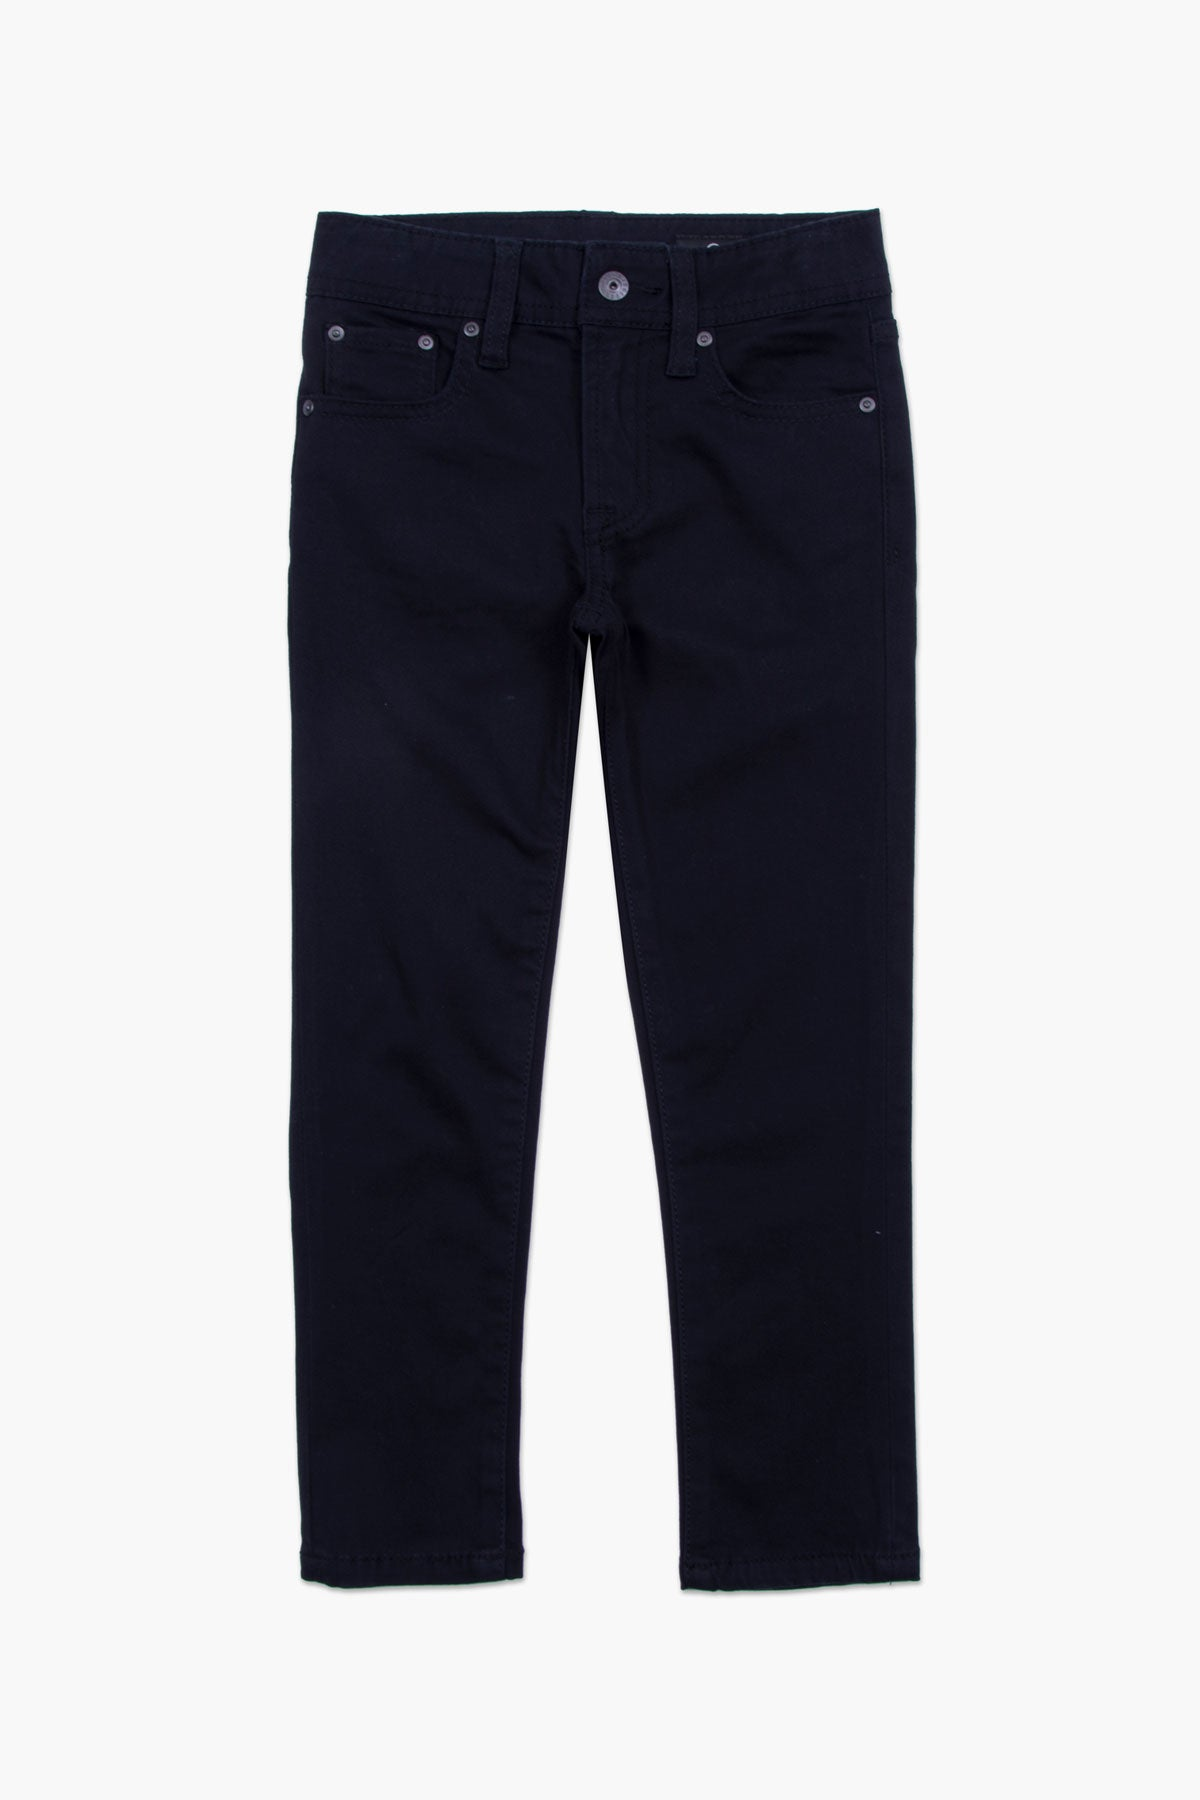 AG Jeans Kids Stryker Luxe Twill Boys Pant - Navy Blue